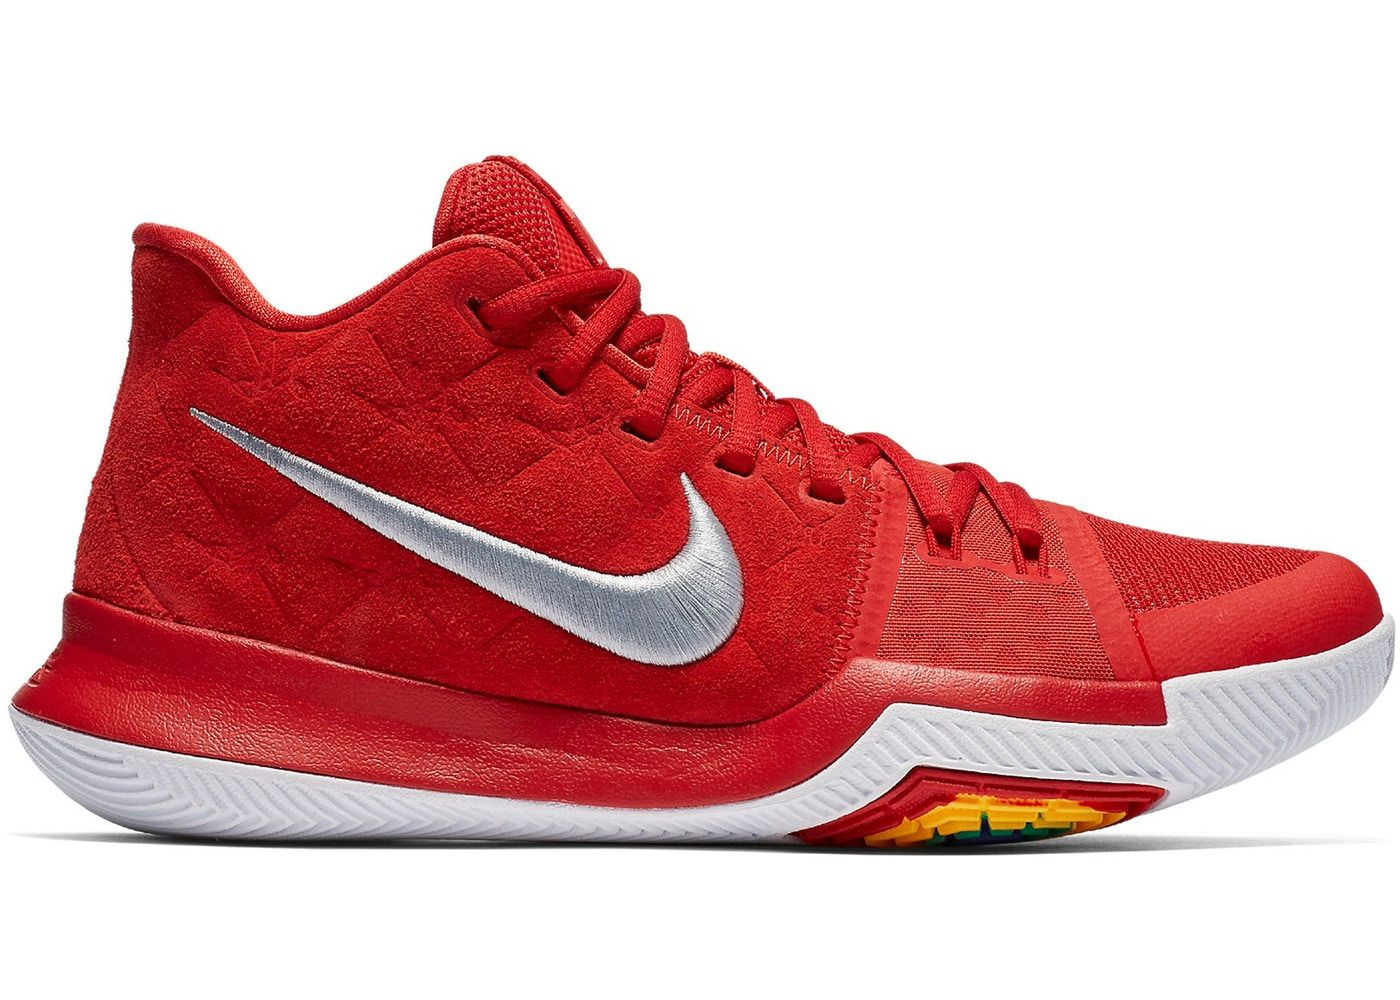 39118a7e Kyrie 3 Red Suede | sneakers | Nike, Sneakers nike, Shoes